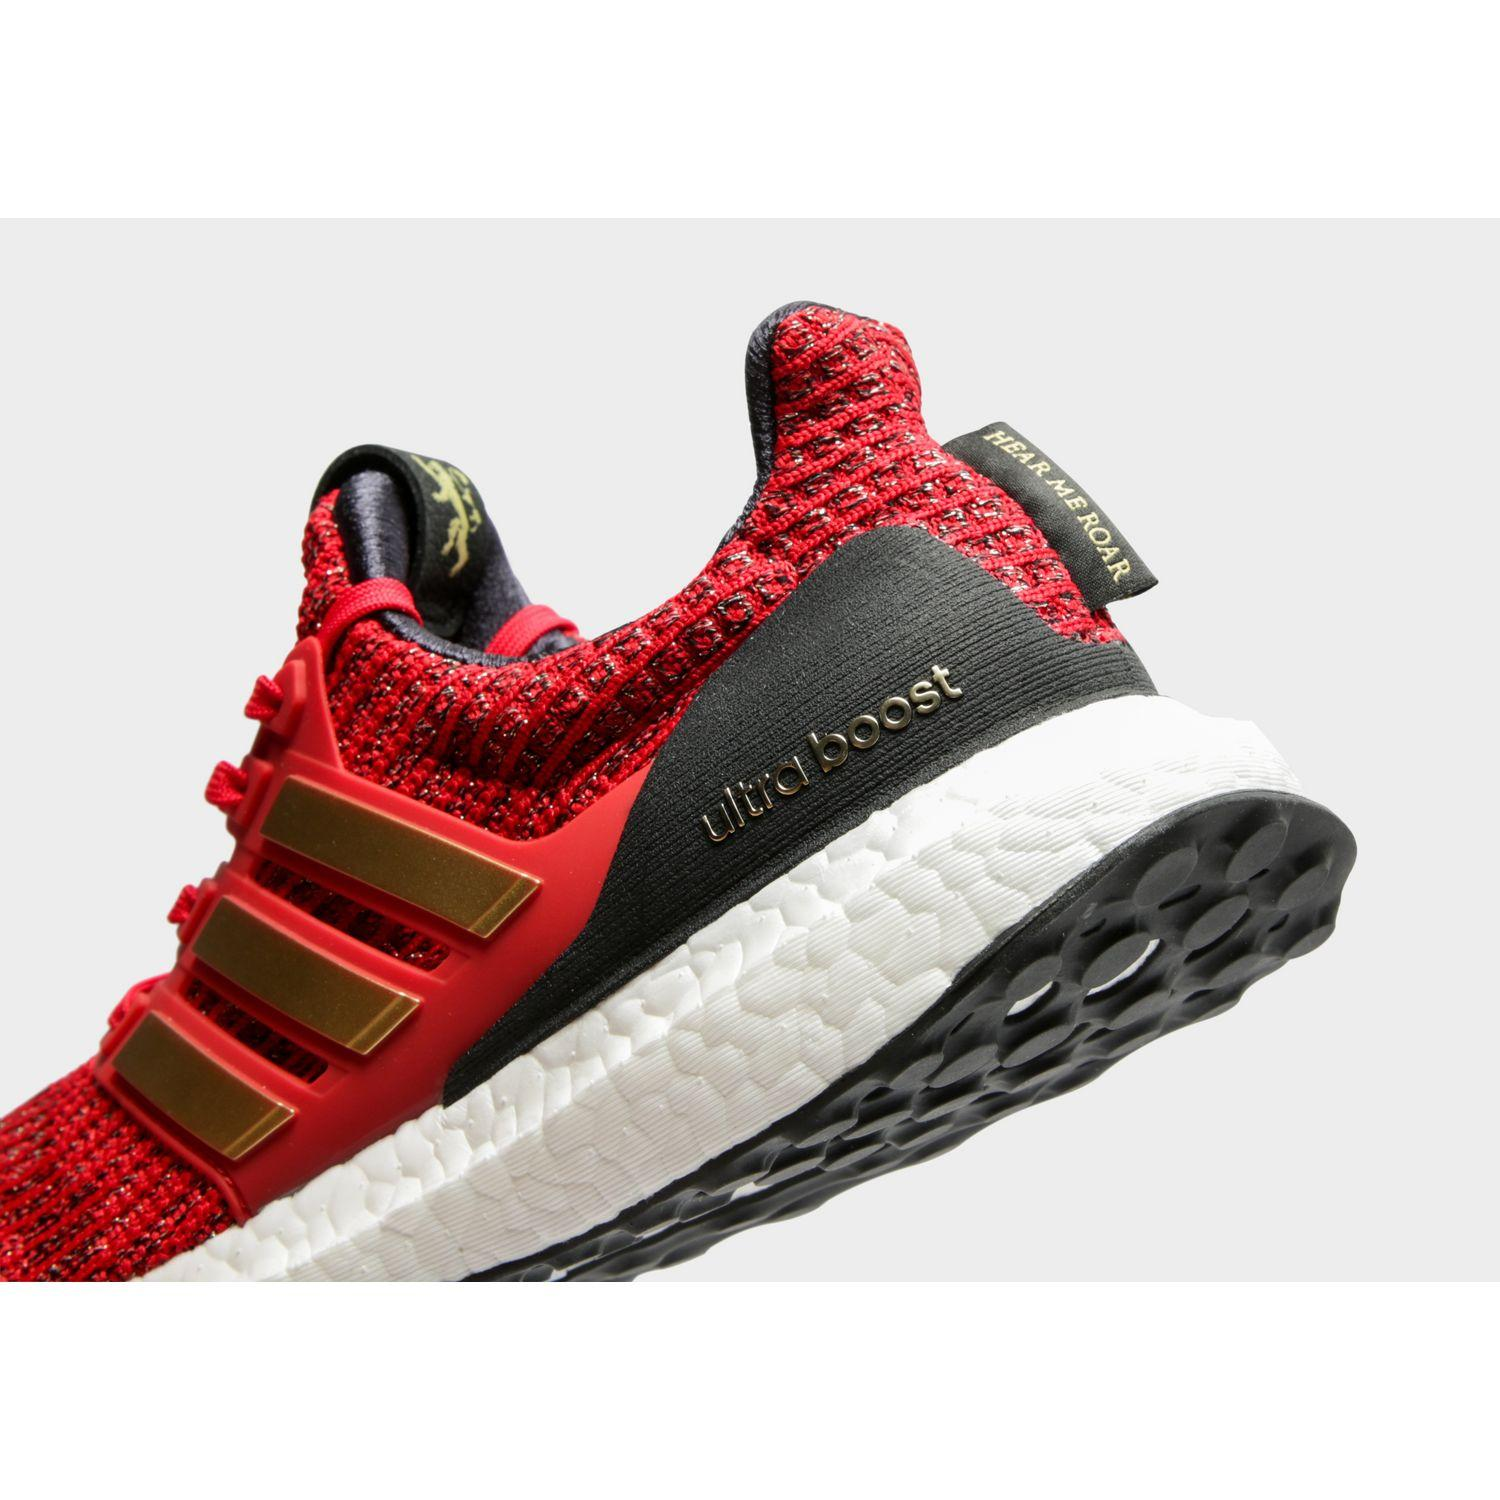 fca2d016fee Lyst - adidas Ultraboost X Game Of Thrones Shoes in Red for Men